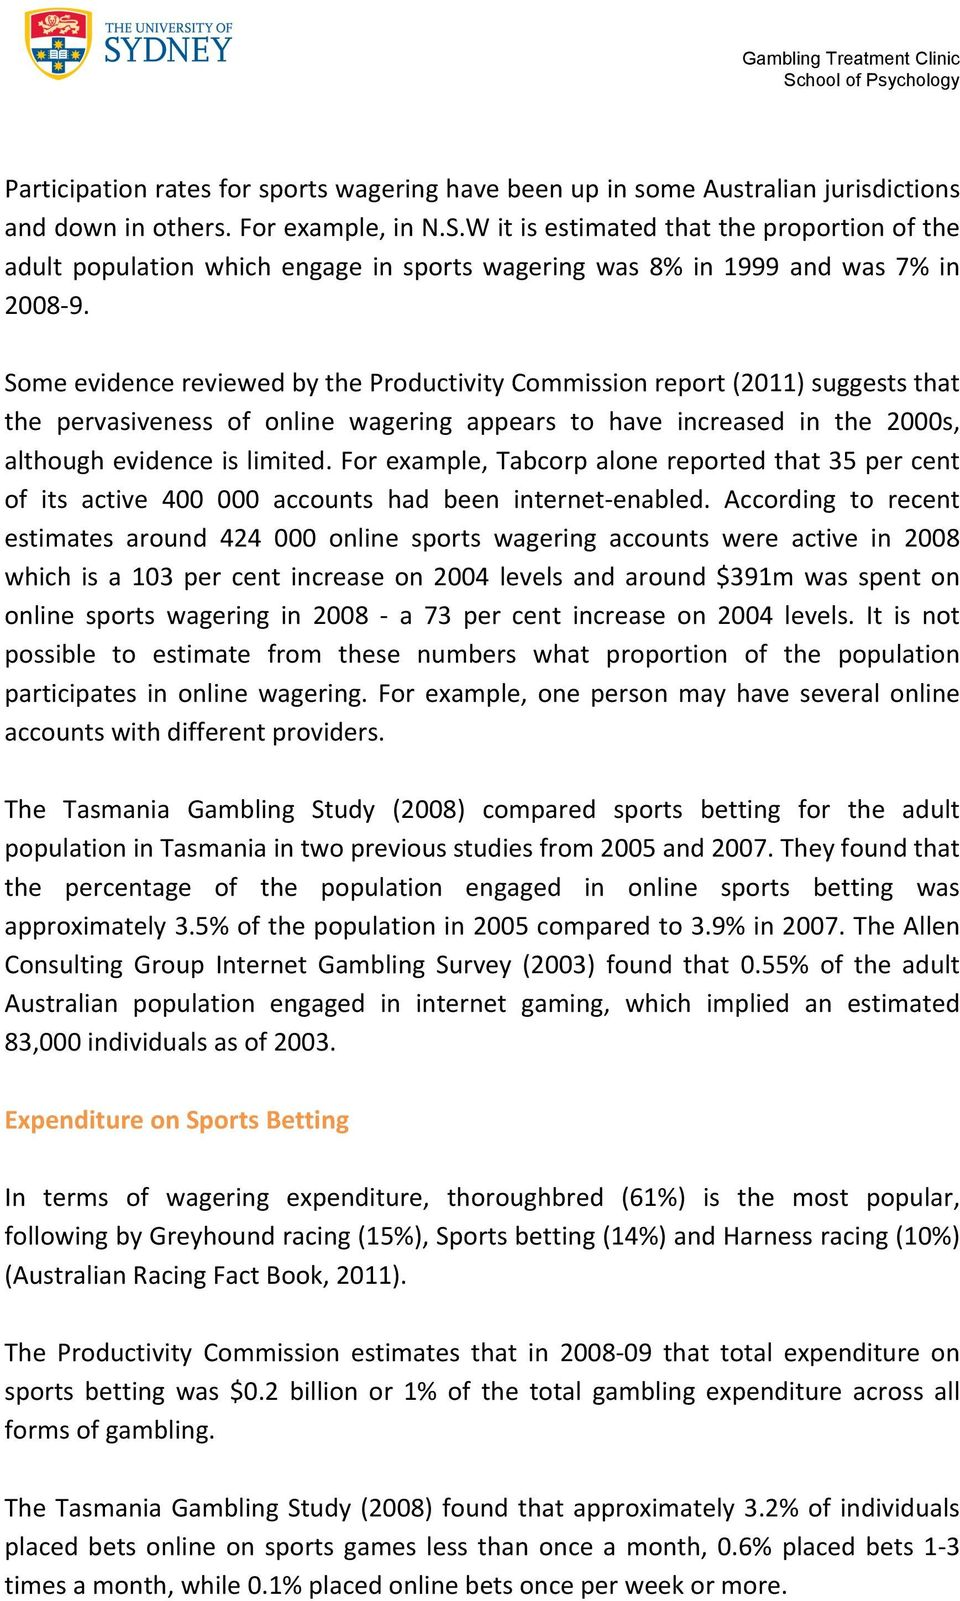 Some evidence reviewed by the Productivity Commission report (2011) suggests that the pervasiveness of online wagering appears to have increased in the 2000s, although evidence is limited.